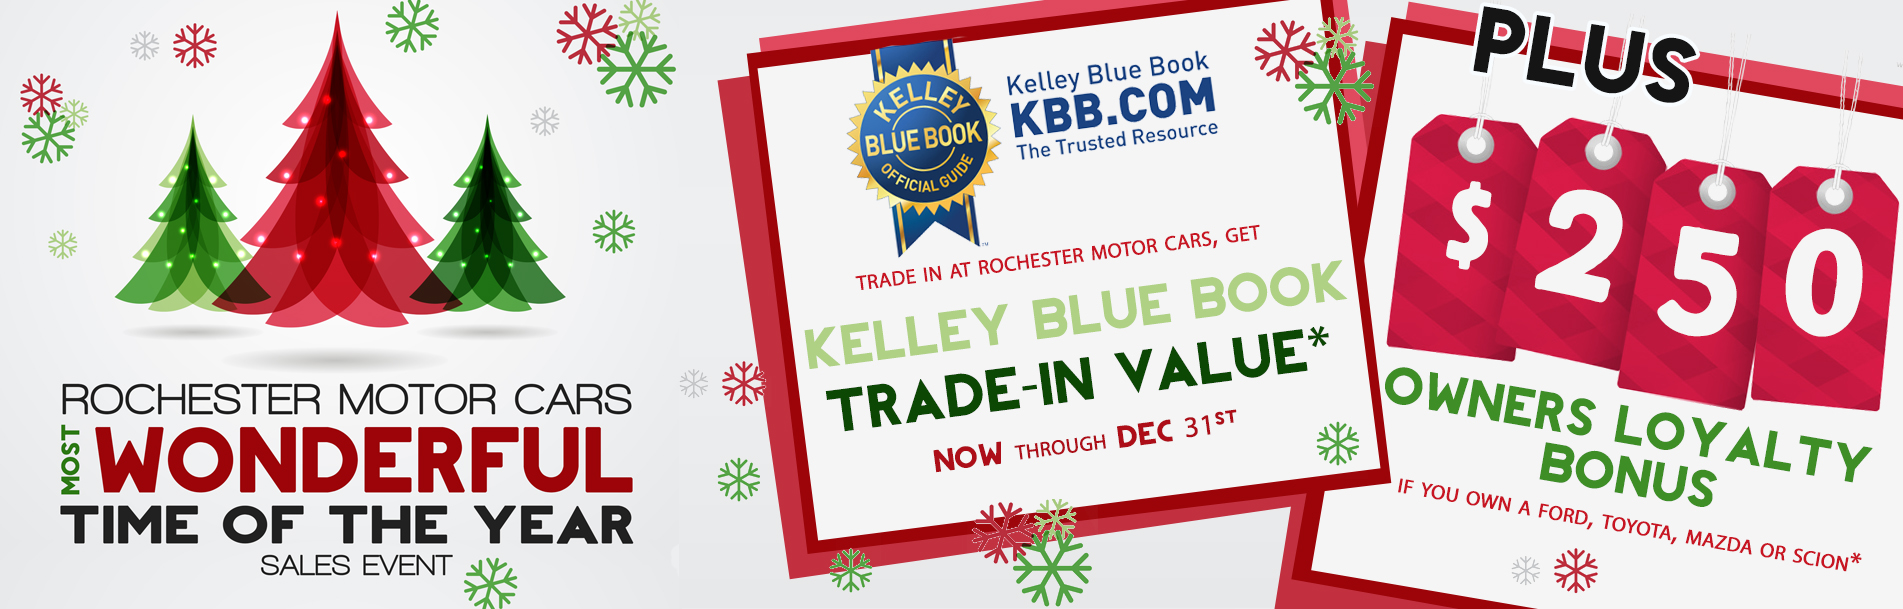 Receive Kelley Blue Book Trade In Value And 0 Owner\'s Loyalty Bonus ...